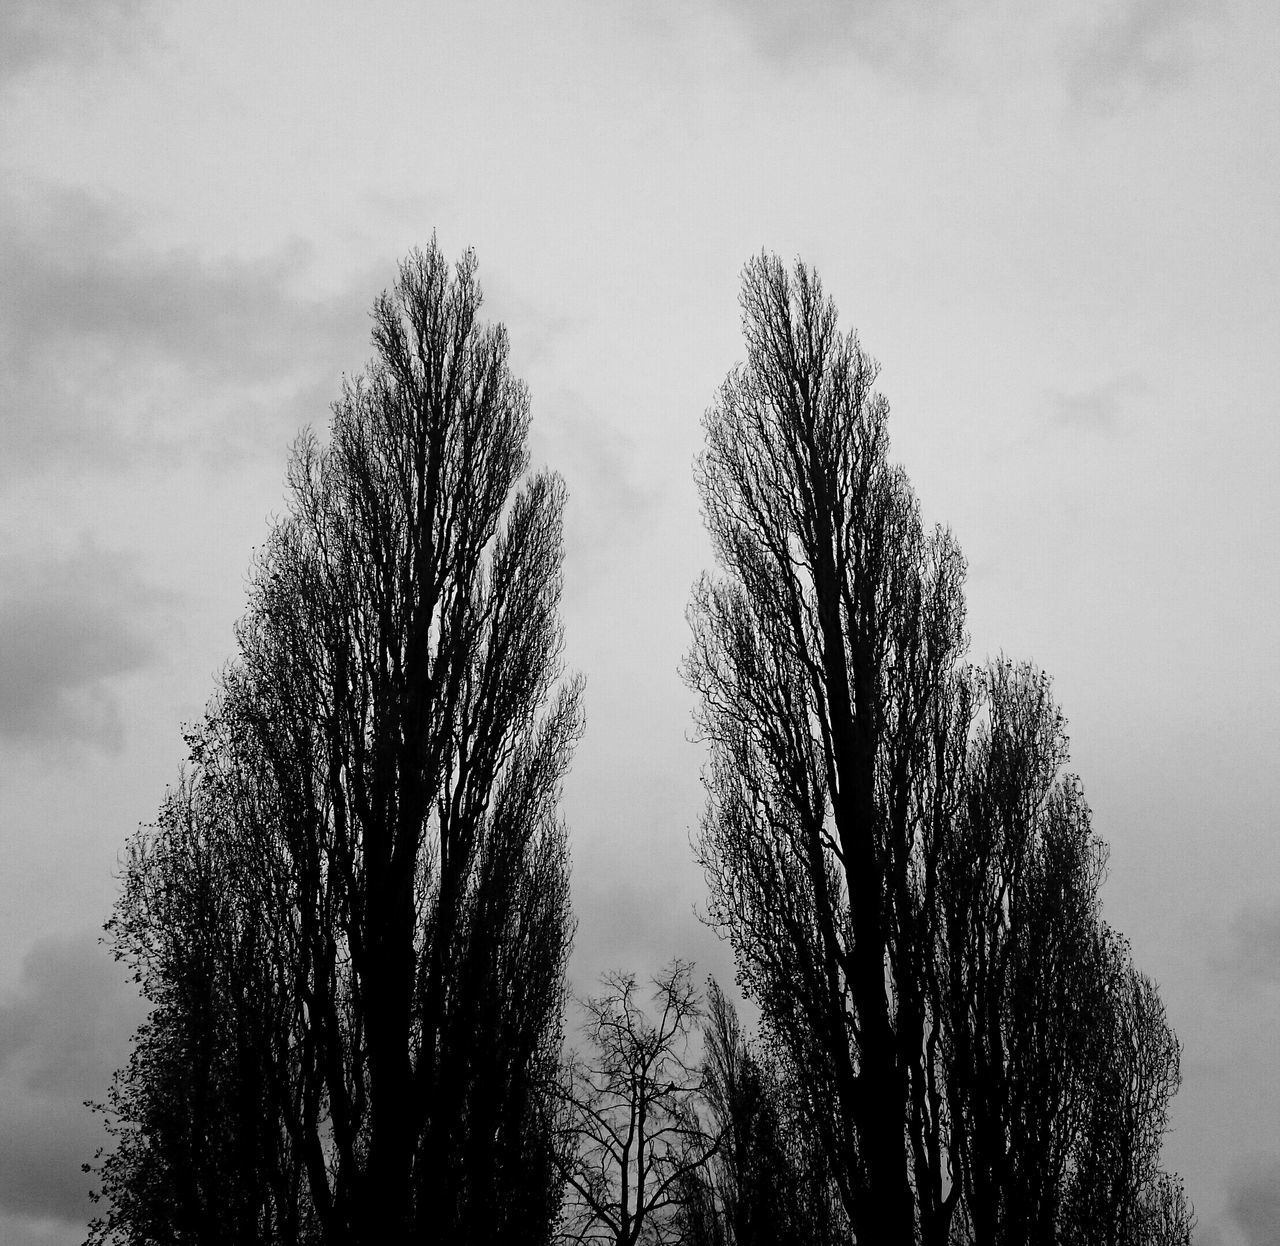 Another Stormy Day Darkness And Light Windyweather Trees Bendover to Eachother Shelter Couple Nature Blackandwhite Black & White Clouds And Sky The Places I've Been Today B&w RePicture Growth